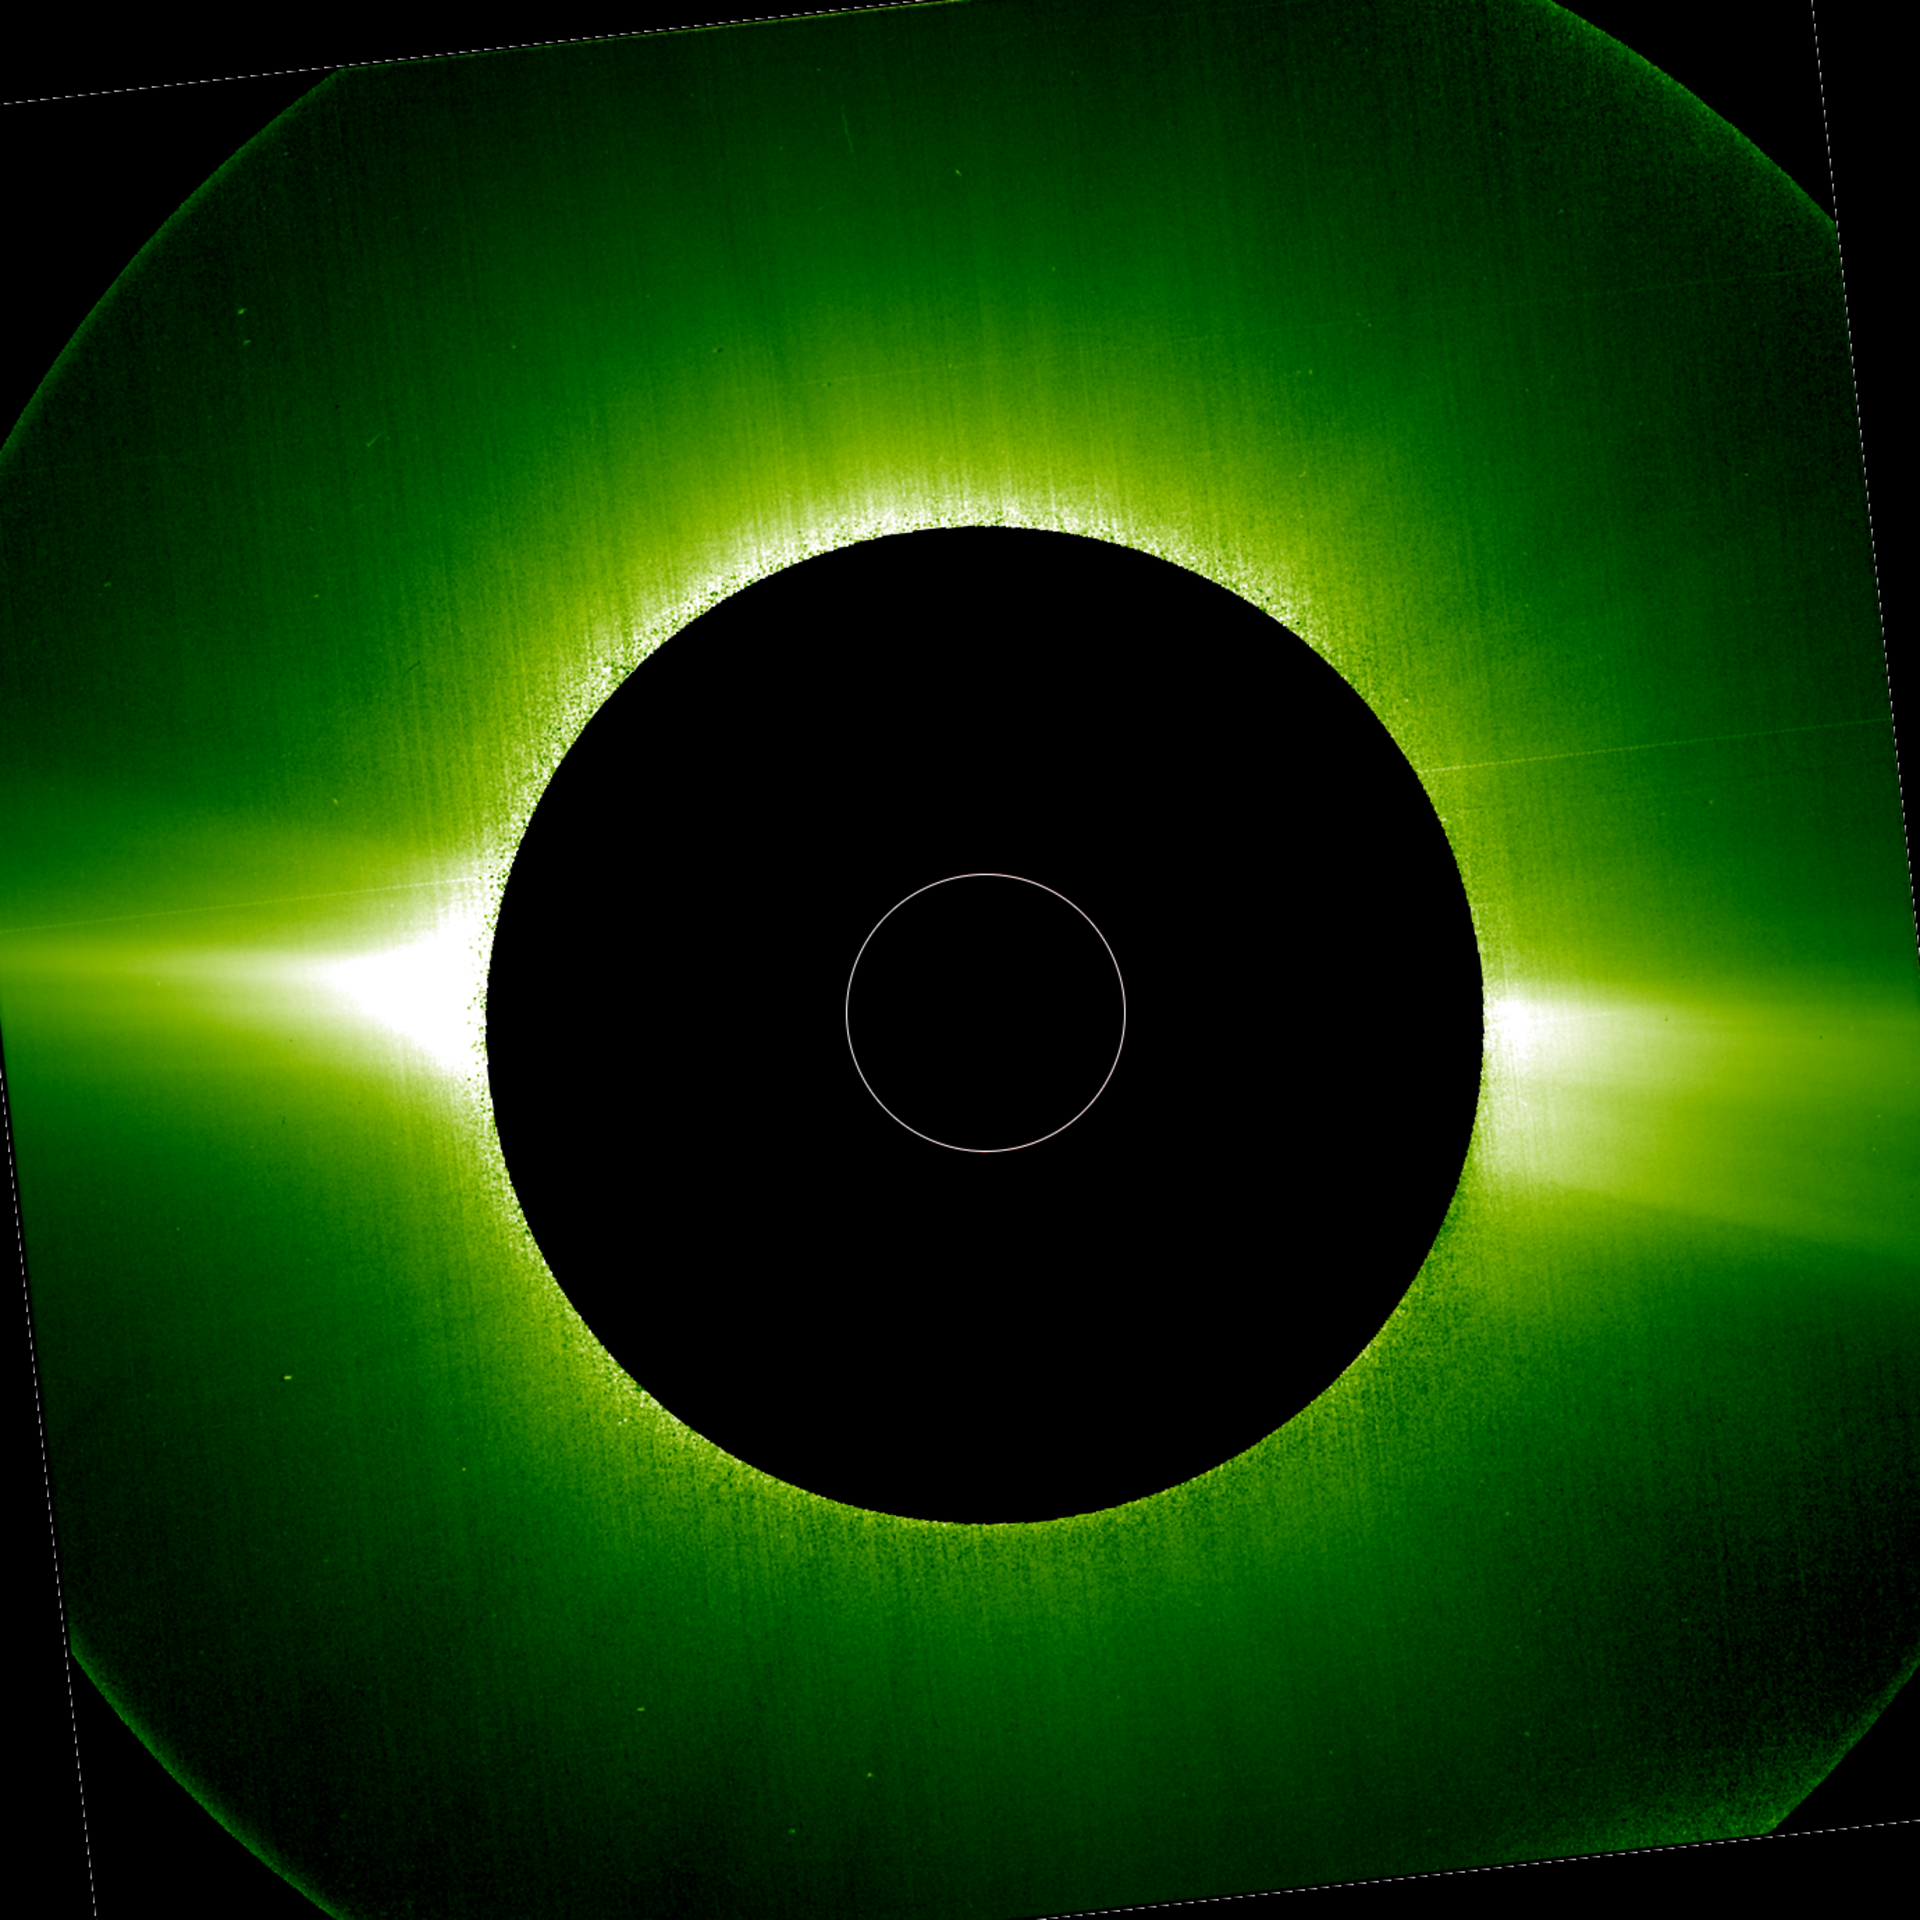 The Sun's corona in visible light on 15 May 2020